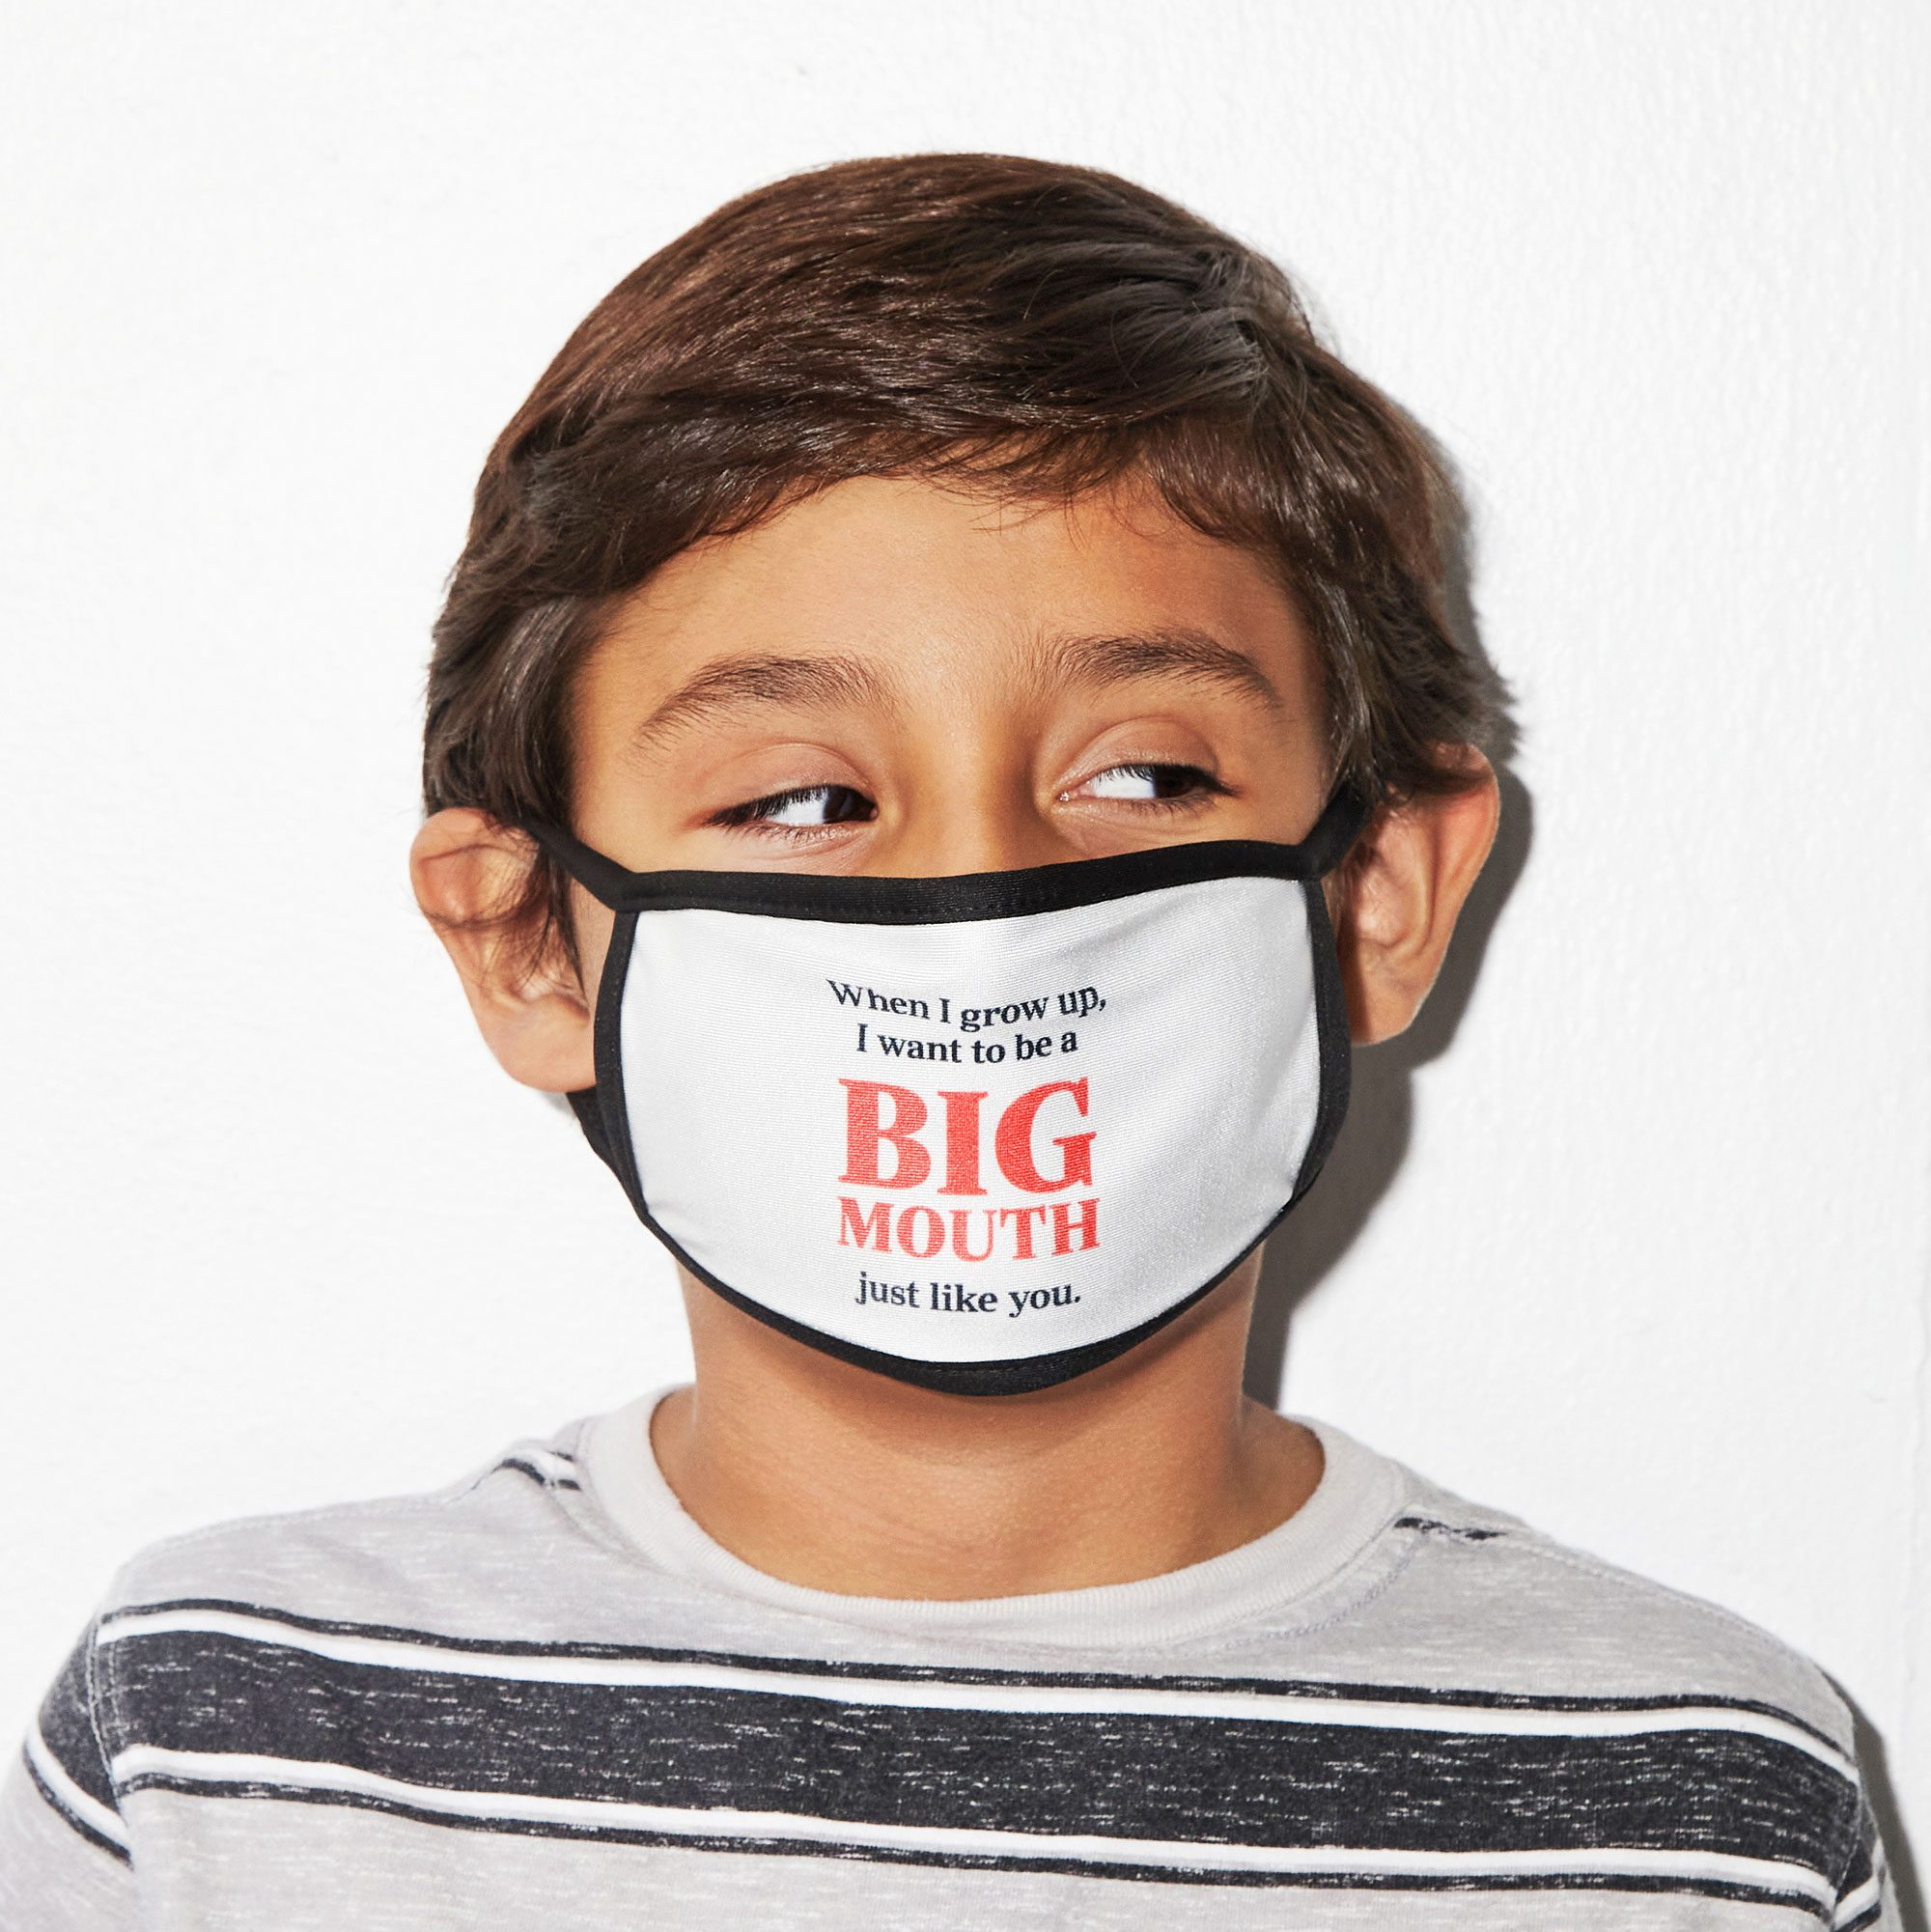 """boy wearing a face mask that reads, """"When I grow up, I want to be a BIG MOUTH just like you."""""""